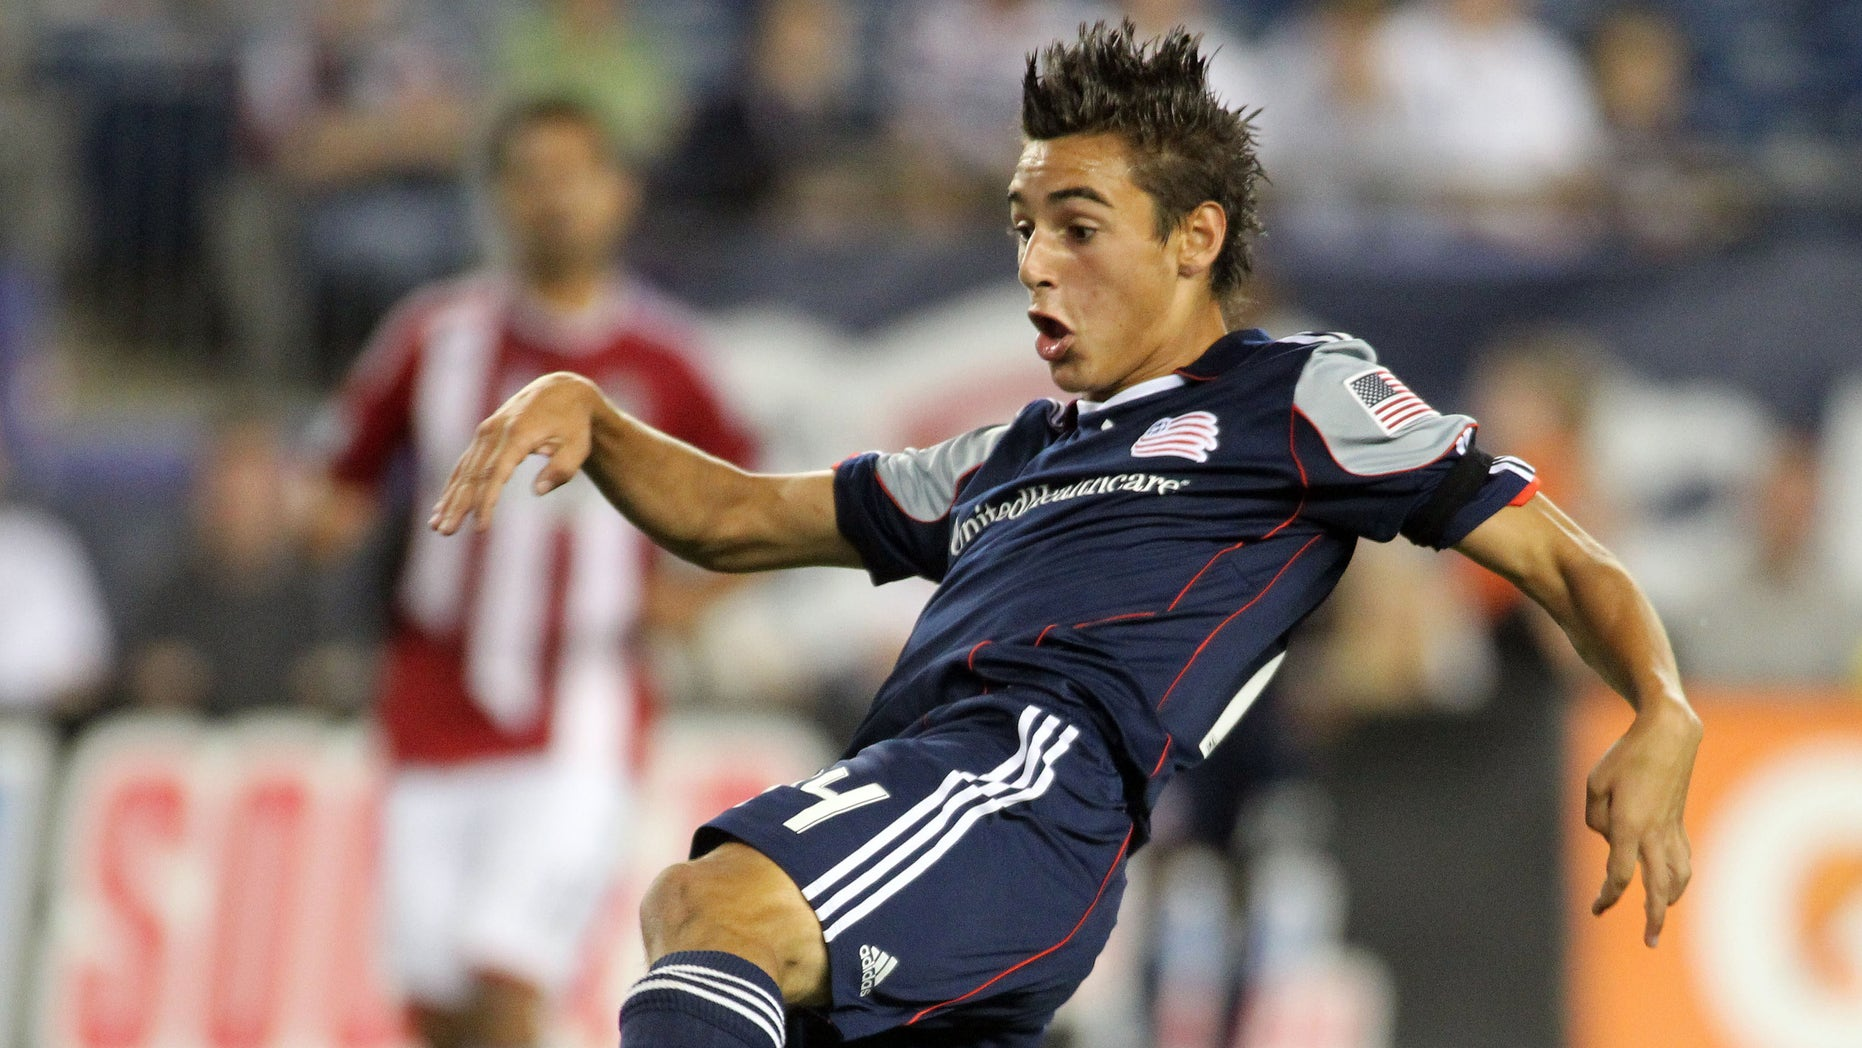 FILE - In this Aug. 6, 2011 file photo, New England Revolution midfielder Diego Fagundez scores a goal against Chivas USA during the second half of an MLS soccer match, in Foxborough, Mass. (AP Photo/Stew Milne, File)